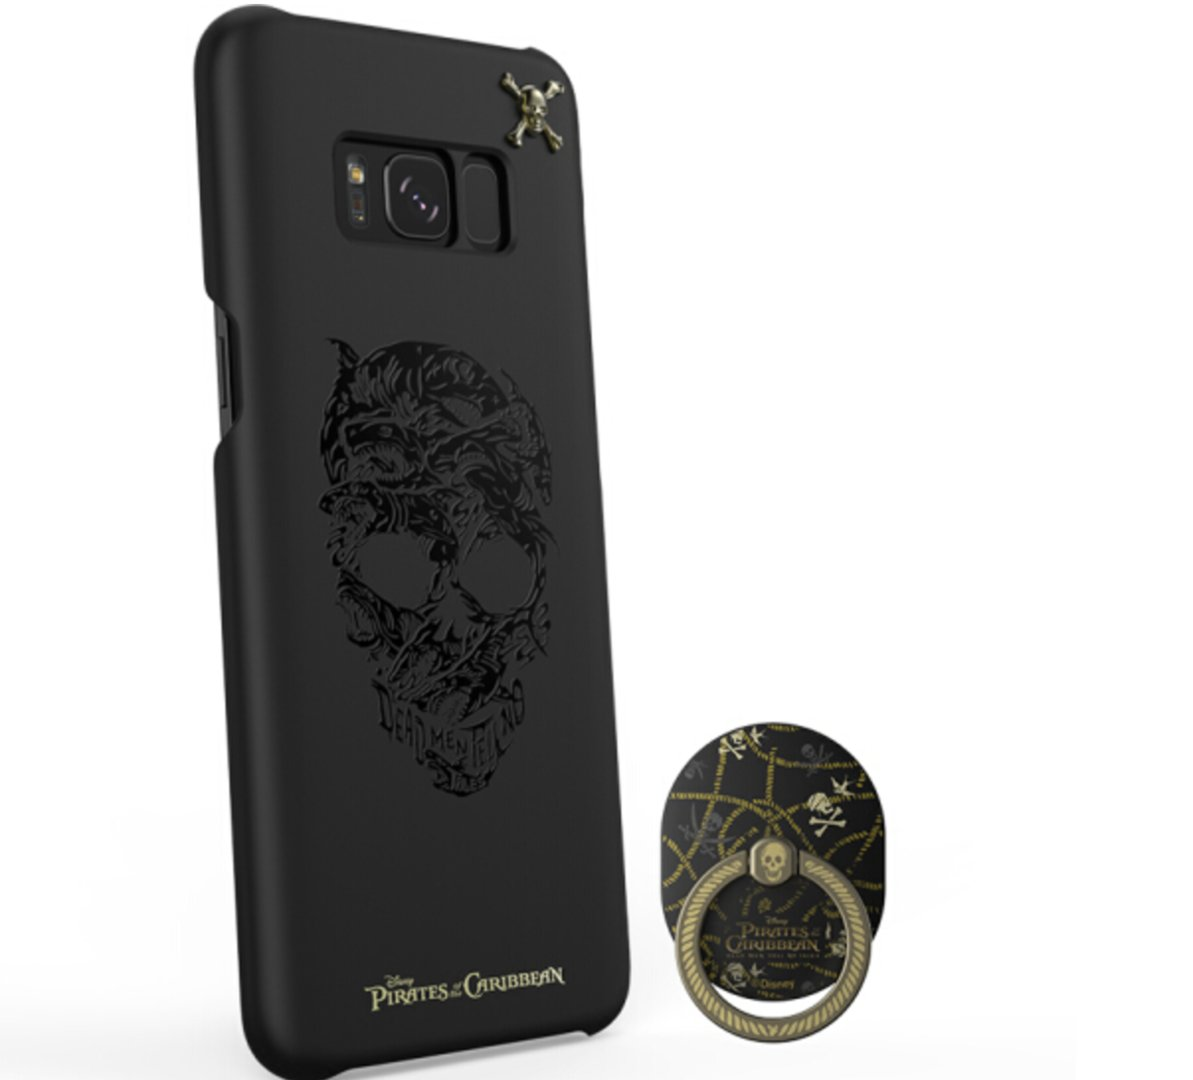 Pirates of the Caribbean-Edition des Galaxy S8